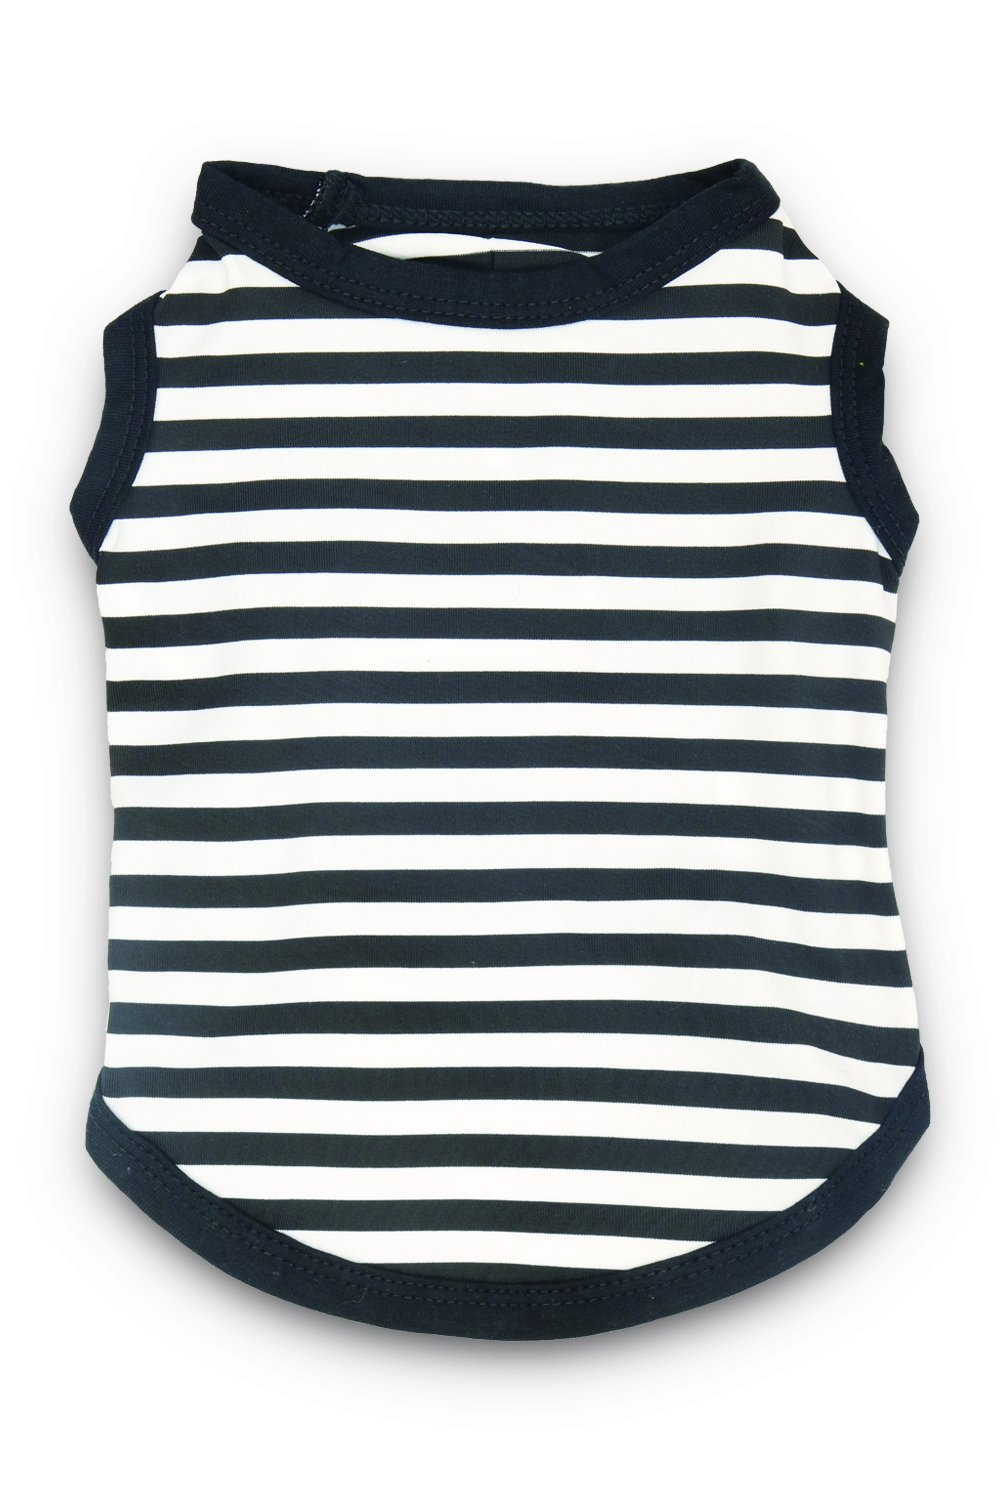 DroolingDog Striped Dog Shirts Pet Dogs Clothes for Small Dogs Boy Girl